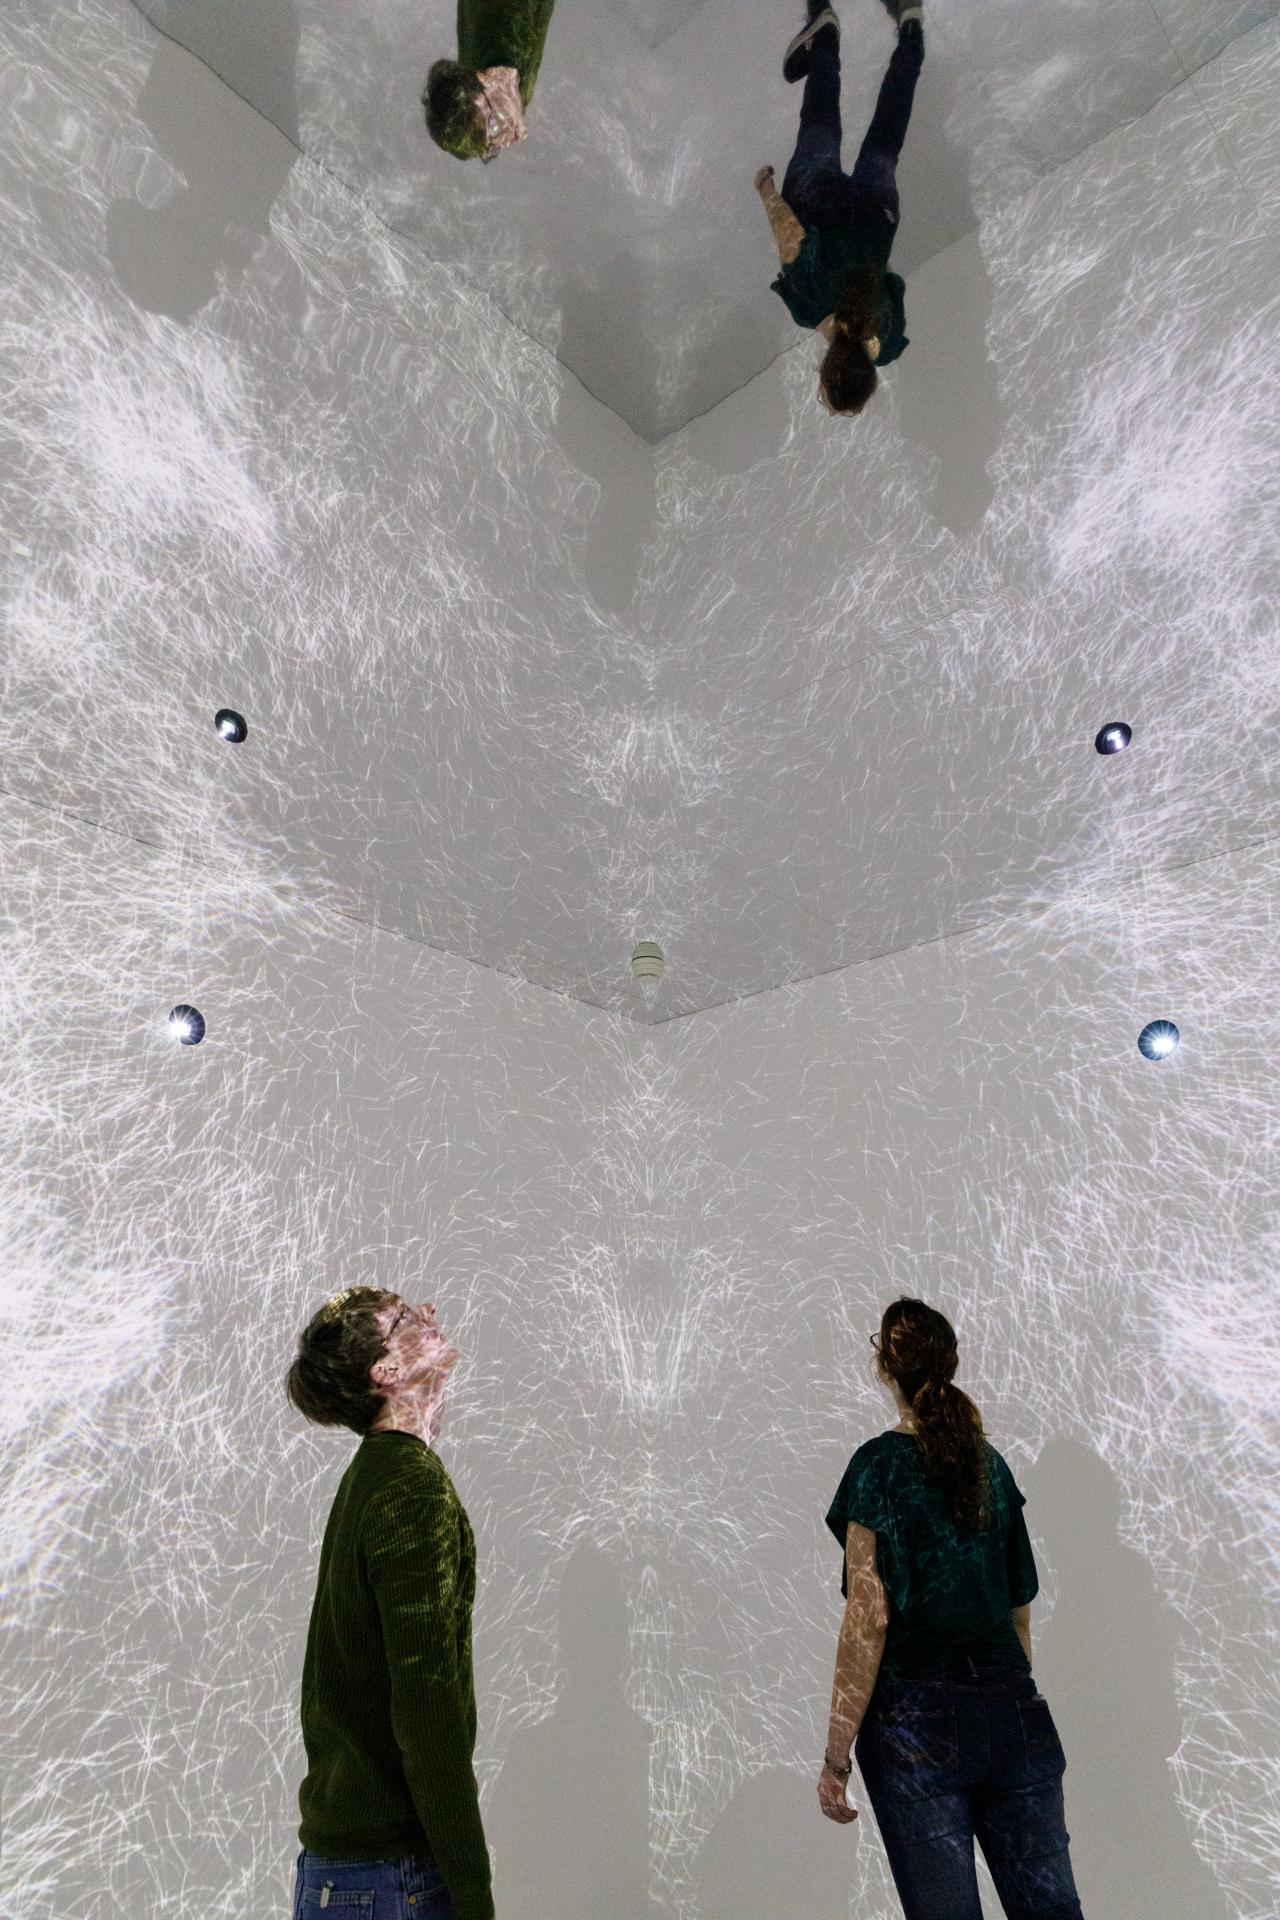 Visitors in a room with video projections on walls and ceiling and a mirrored floor.